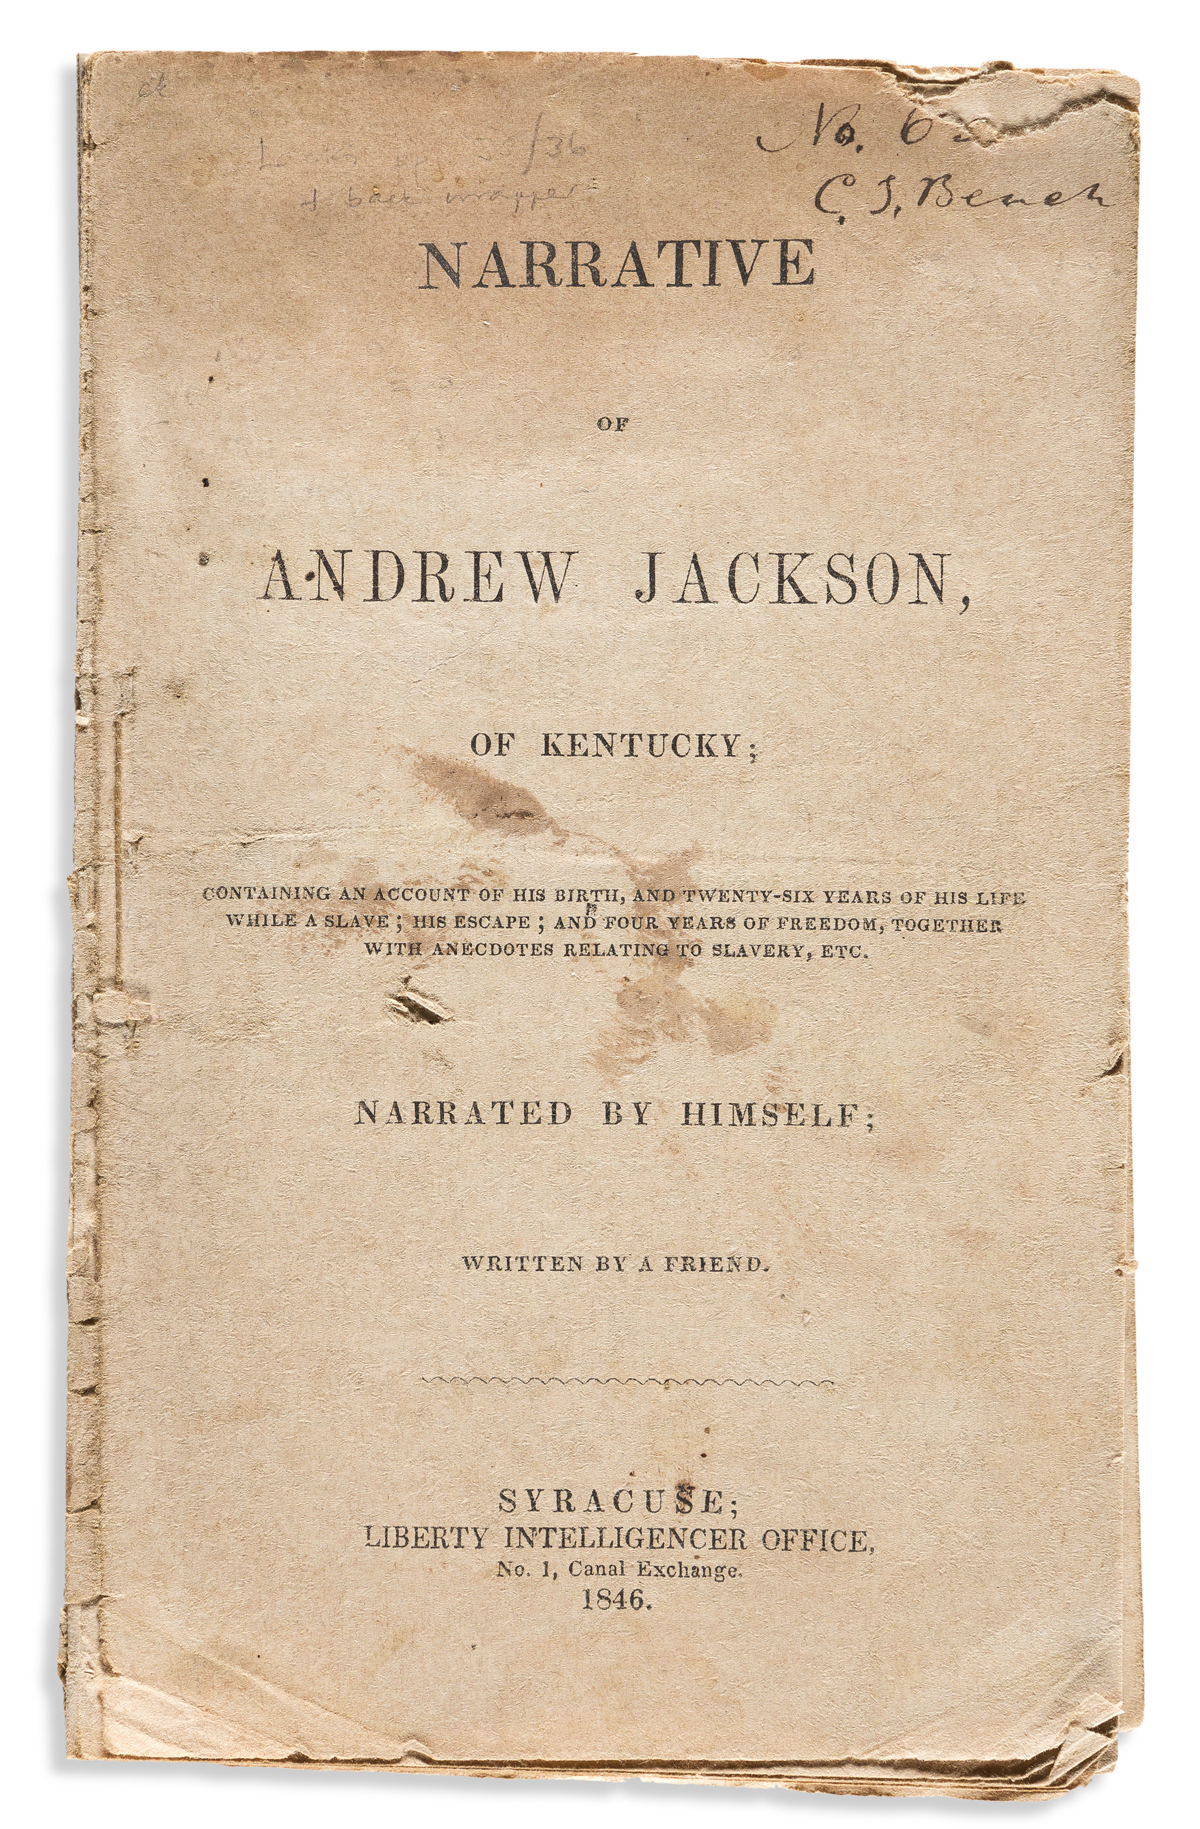 (SLAVERY AND ABOLITION.) Narrative of Andrew Jackson, of Kentucky; Containing . . . Twenty-Six Years of his Life while a Slave.